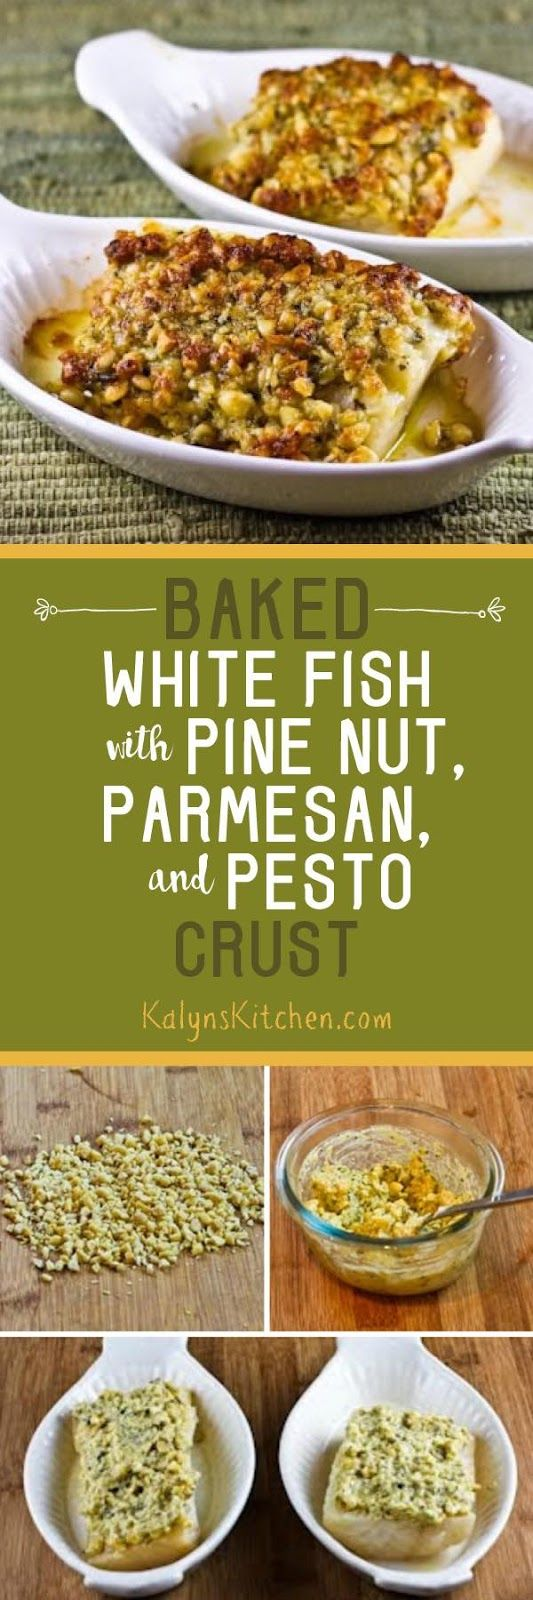 Baked White Fish with Pine Nut, Parmesan, and Basil Pesto Crust is low-carb, Keto, low-glycemic, gluten-free, and South Beach Diet friendly, and it's special enough to serve to guests. I promise, no one will remotely think of this as diet food! [found on KalynsKitchen.com] #BakedFish #Baked FishPesto #BakedFishPestoPineNuts